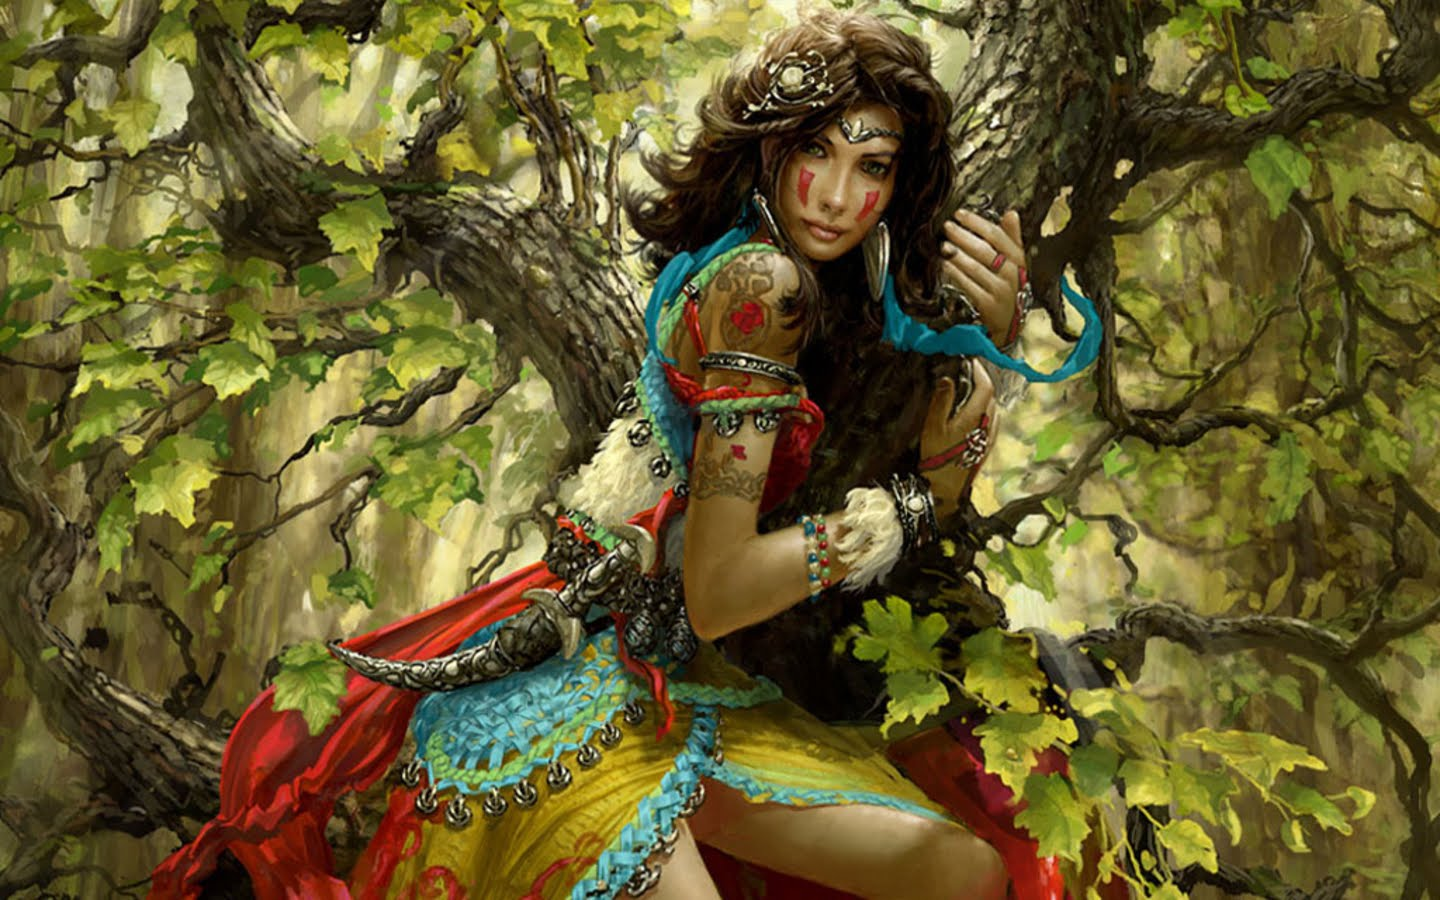 Wallpapers fantasy women warrior in love fantasy women beautiful face